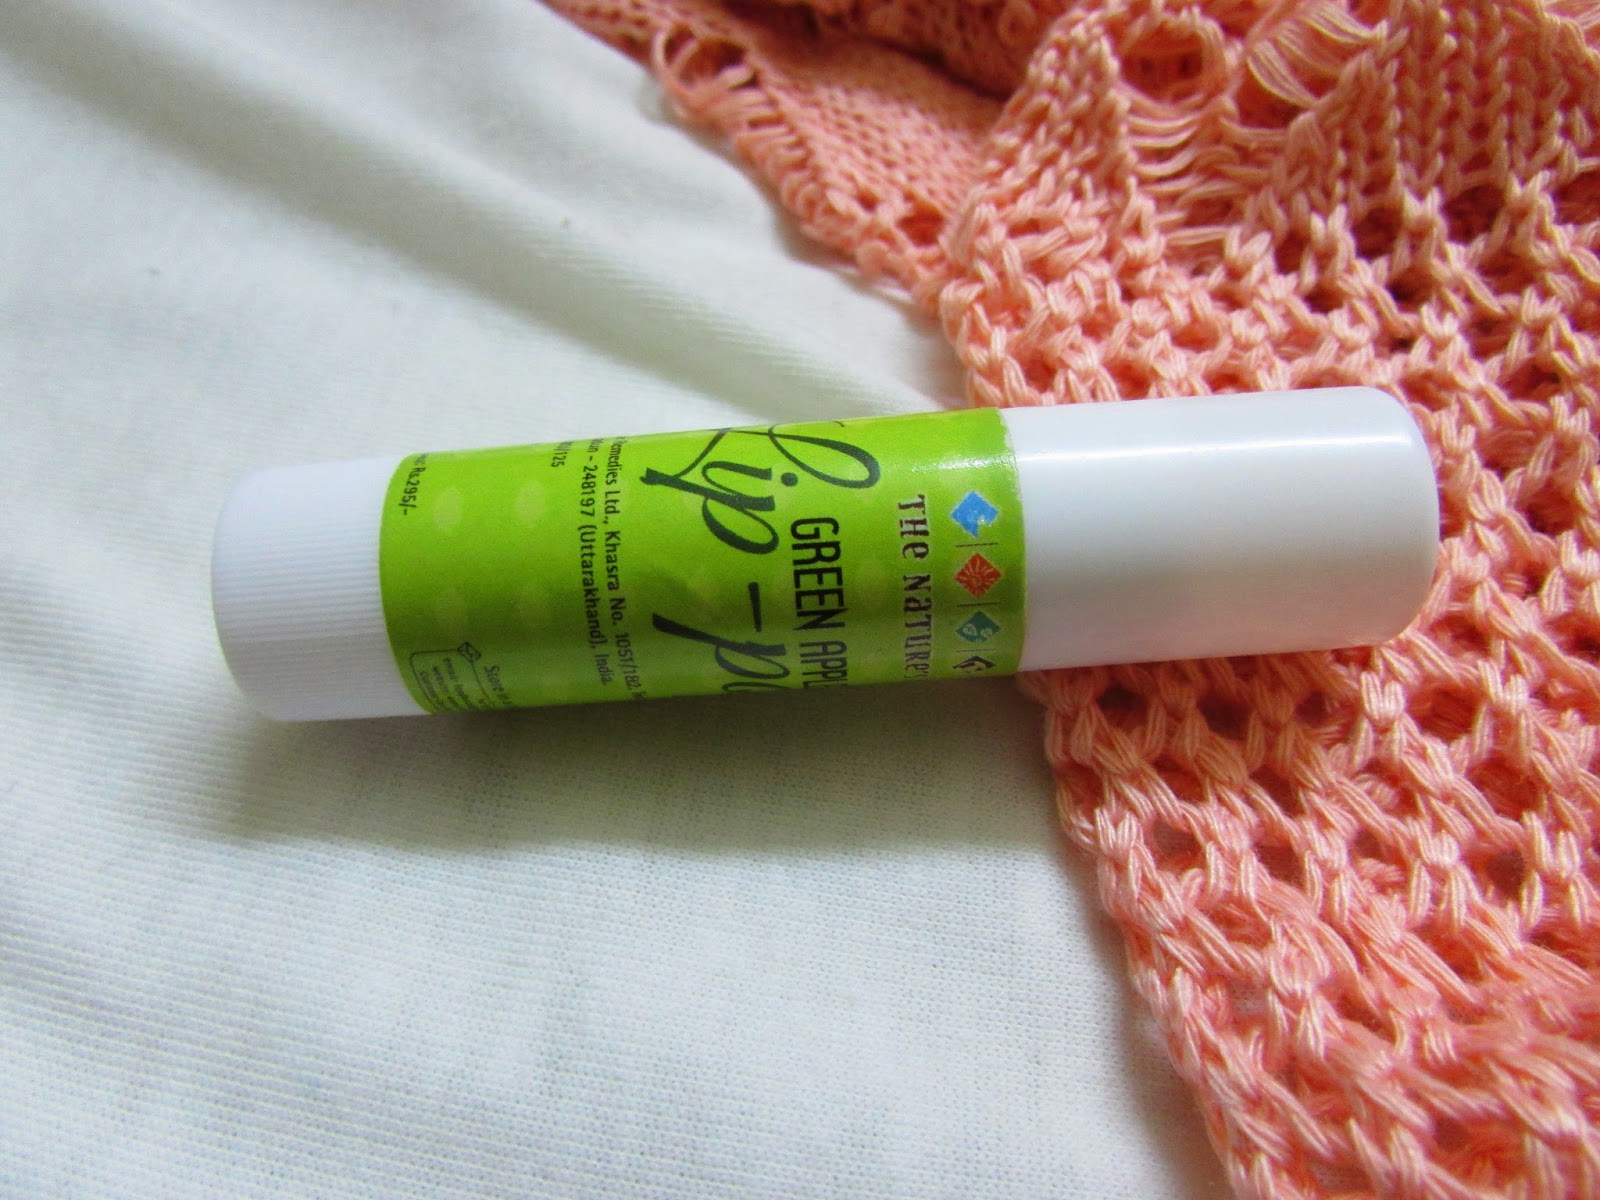 Jargens ultra healing review, Neutrogena oil free moisture,Gold Cacao Pack, klairs Gentle Black deep cleansing oil, cetaphil cleansing lotion , argen dew argan oil,  baby lips electro pop , natures co green apple lip pop, suganda india cream , schwarzkopf rescue hair treatment, winter musthaves, winter skincare musthaves, winter haircare musthaves,beauty , fashion,beauty and fashion,beauty blog, fashion blog , indian beauty blog,indian fashion blog, beauty and fashion blog, indian beauty and fashion blog, indian bloggers, indian beauty bloggers, indian fashion bloggers,indian bloggers online, top 10 indian bloggers, top indian bloggers,top 10 fashion bloggers, indian bloggers on blogspot,home remedies, how to